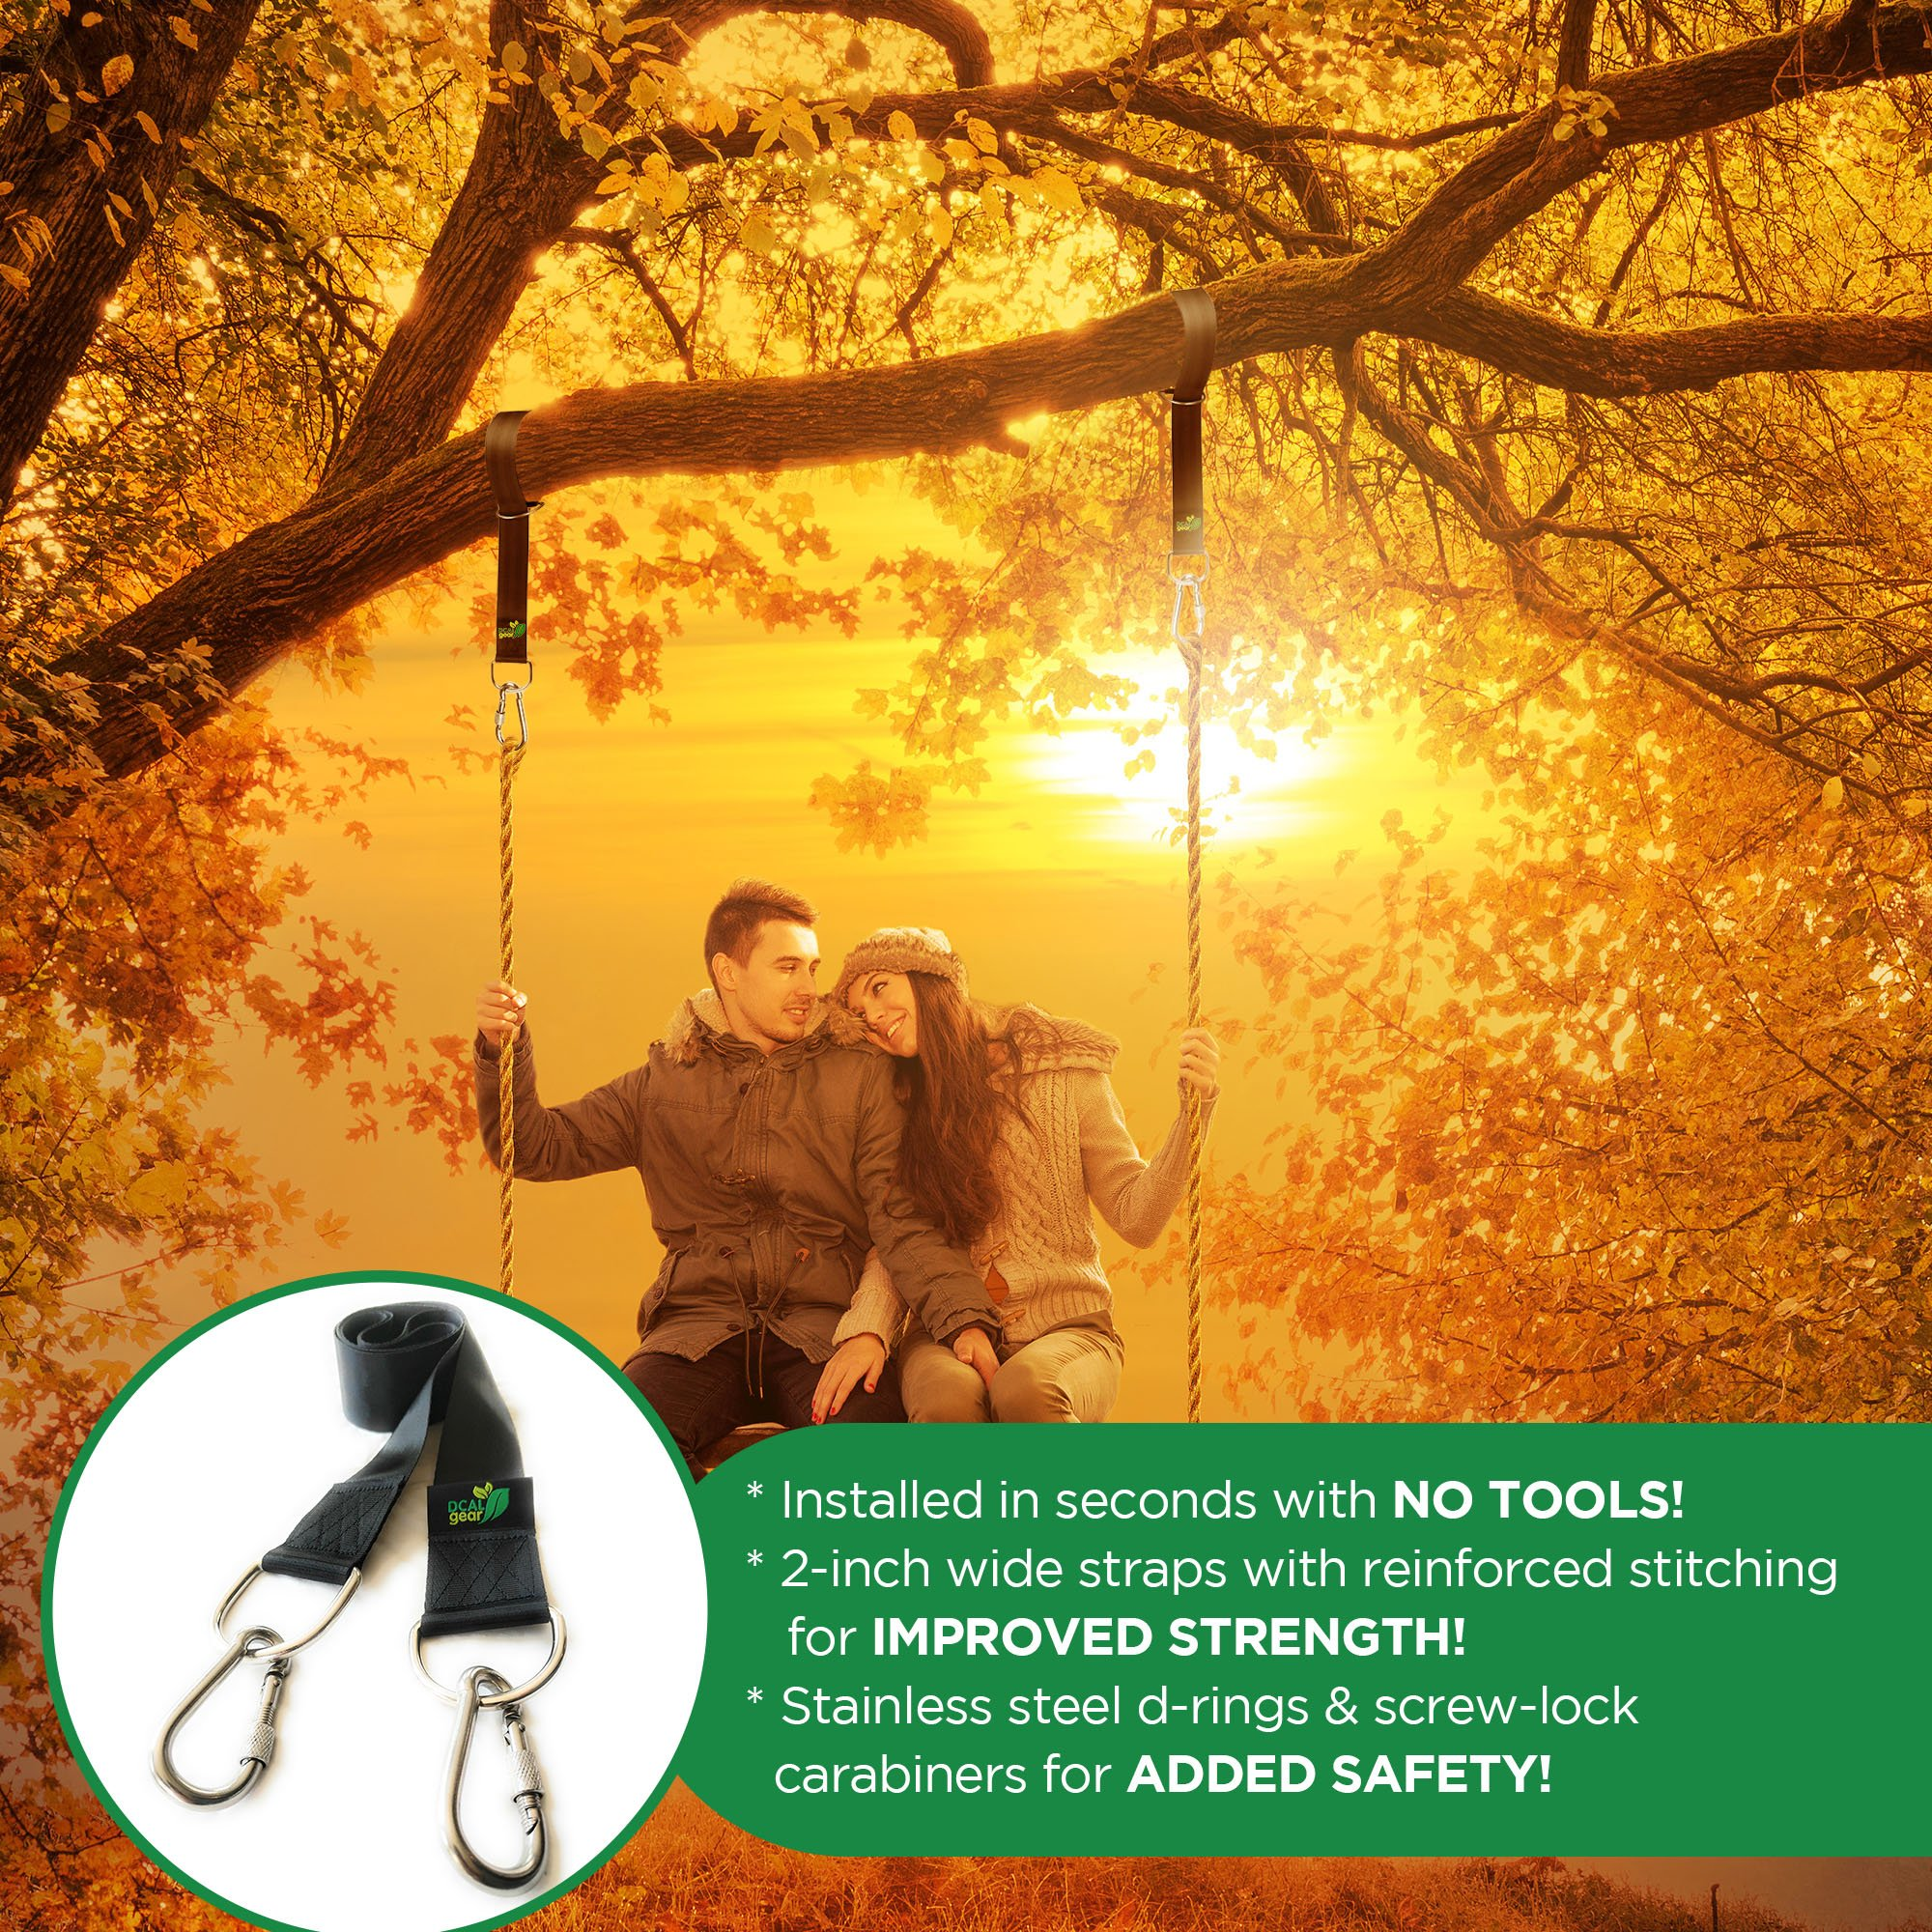 Best Tree Swing Hanging Kit - Easy 30 Sec Install on Outdoor Toys - Two 5 ft Tree Straps Hold 2000 lb - Safe, Large Carabiners & D Rings - Fits Hammocks & Most Swing Seats - Better Than Chain or Rope! by DCAL Gear (Image #5)